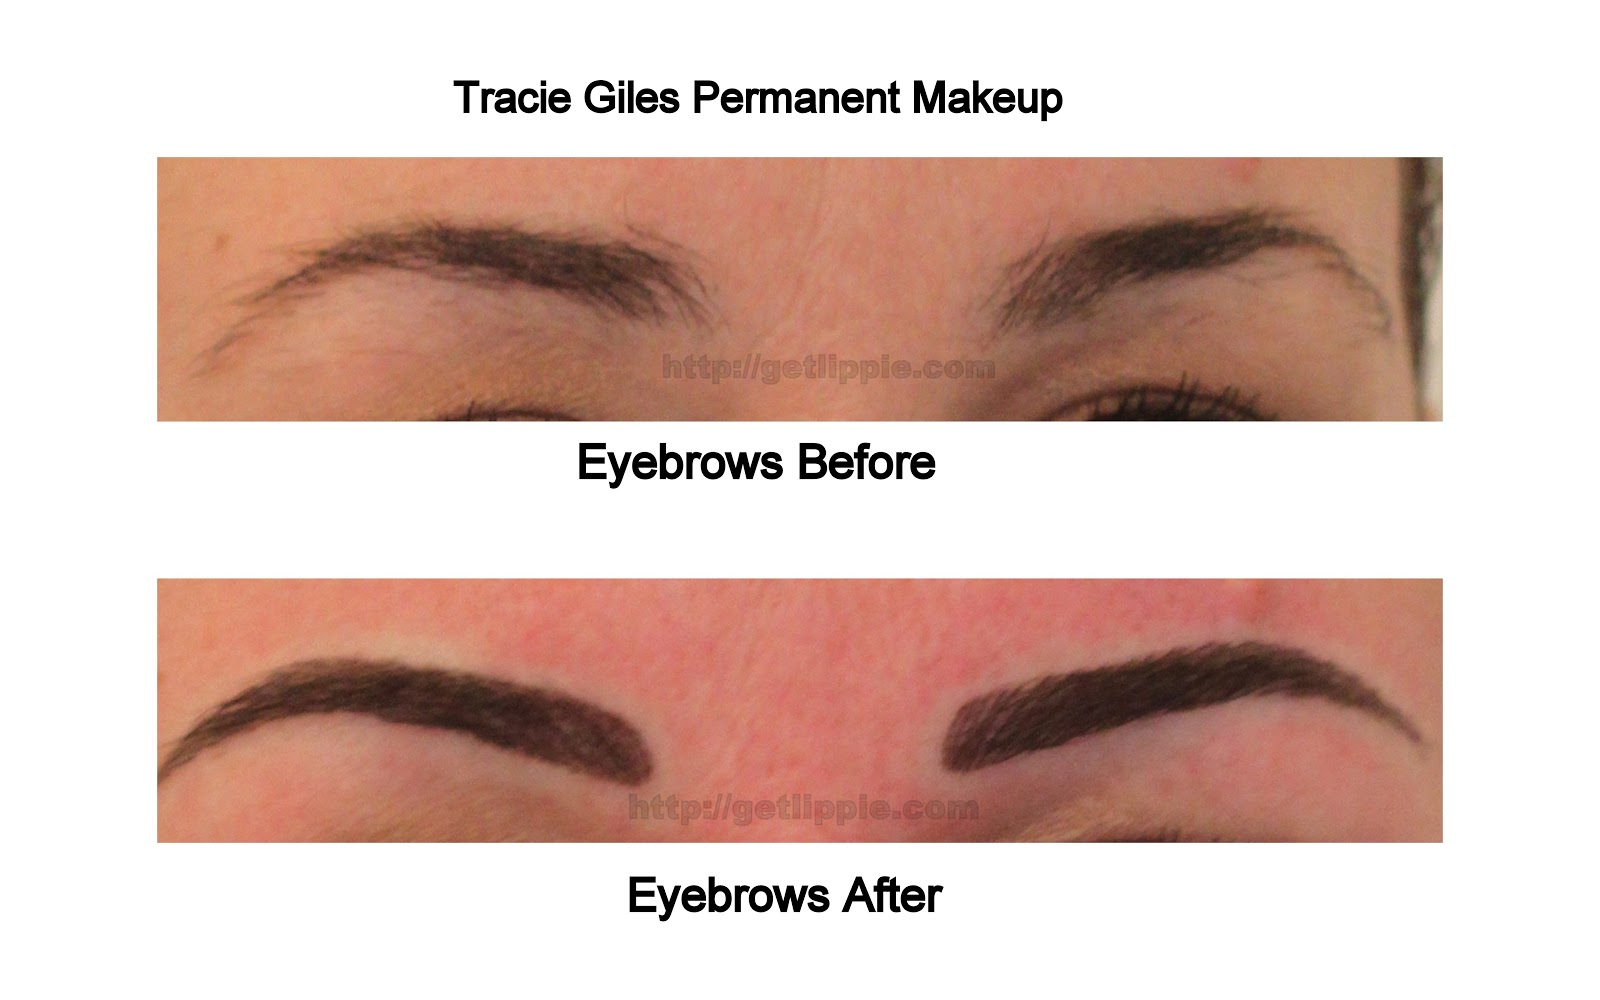 Best Of 2012 Permanent Makeup With Tracie Giles Get Lippie